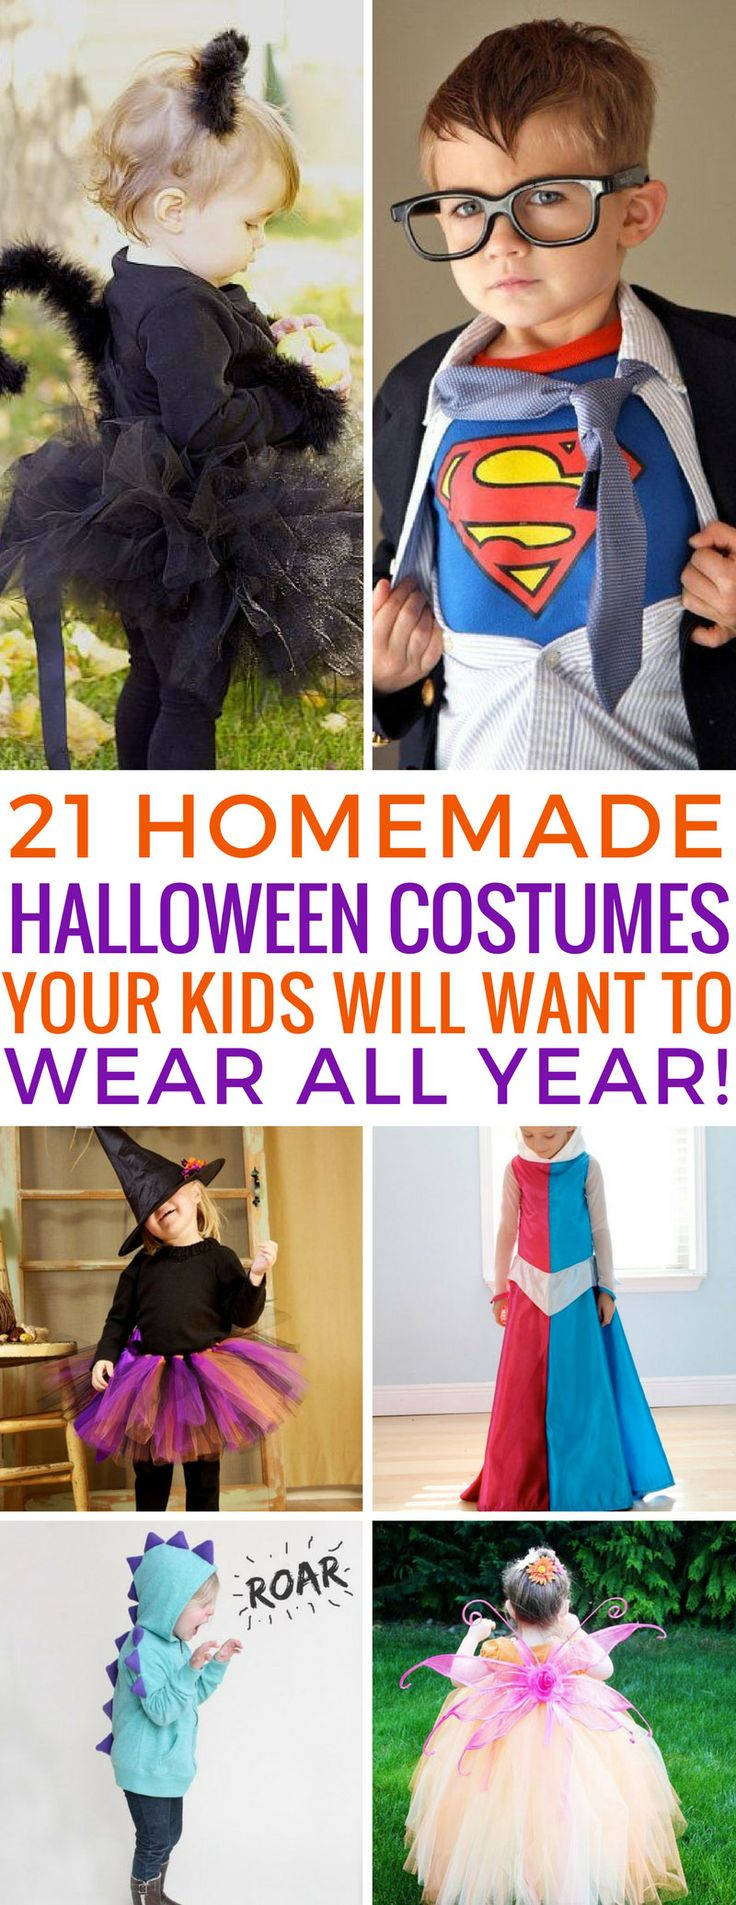 So cute! Love these homemade Halloween costumes ideas for the kids! Thanks for sharing!